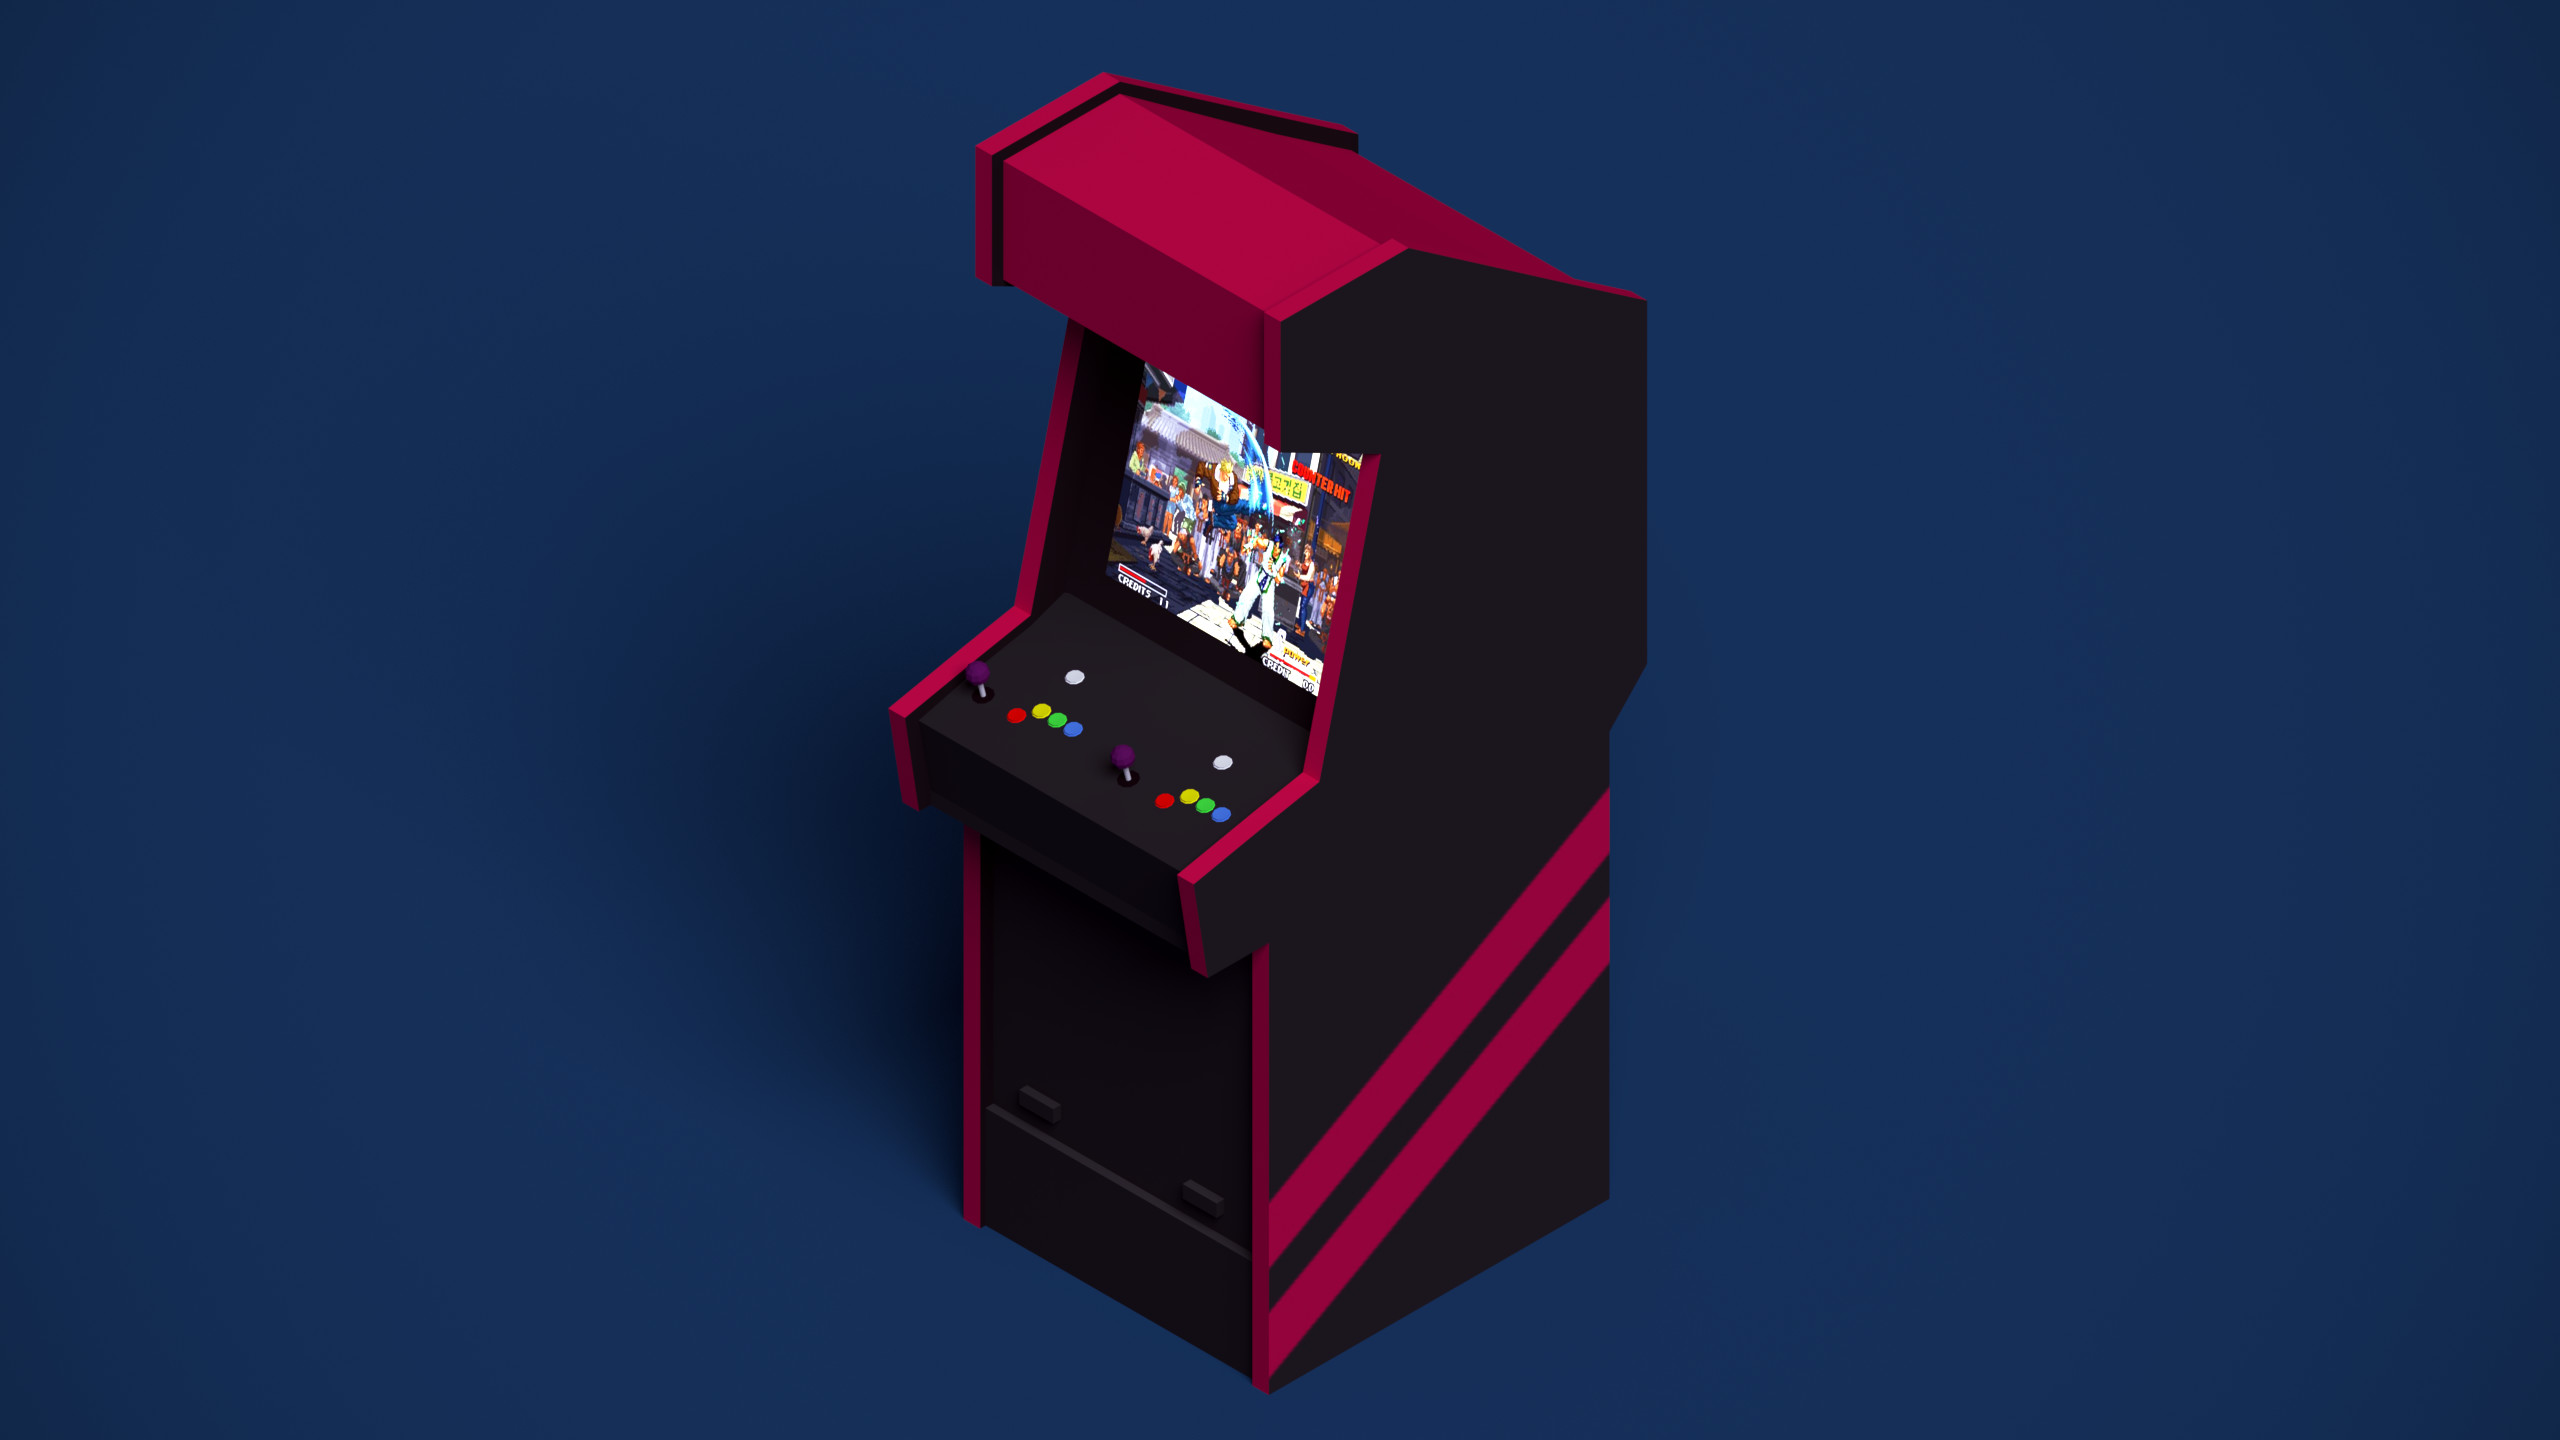 HD Wallpaper   Background ID:784657. Video Game Arcade